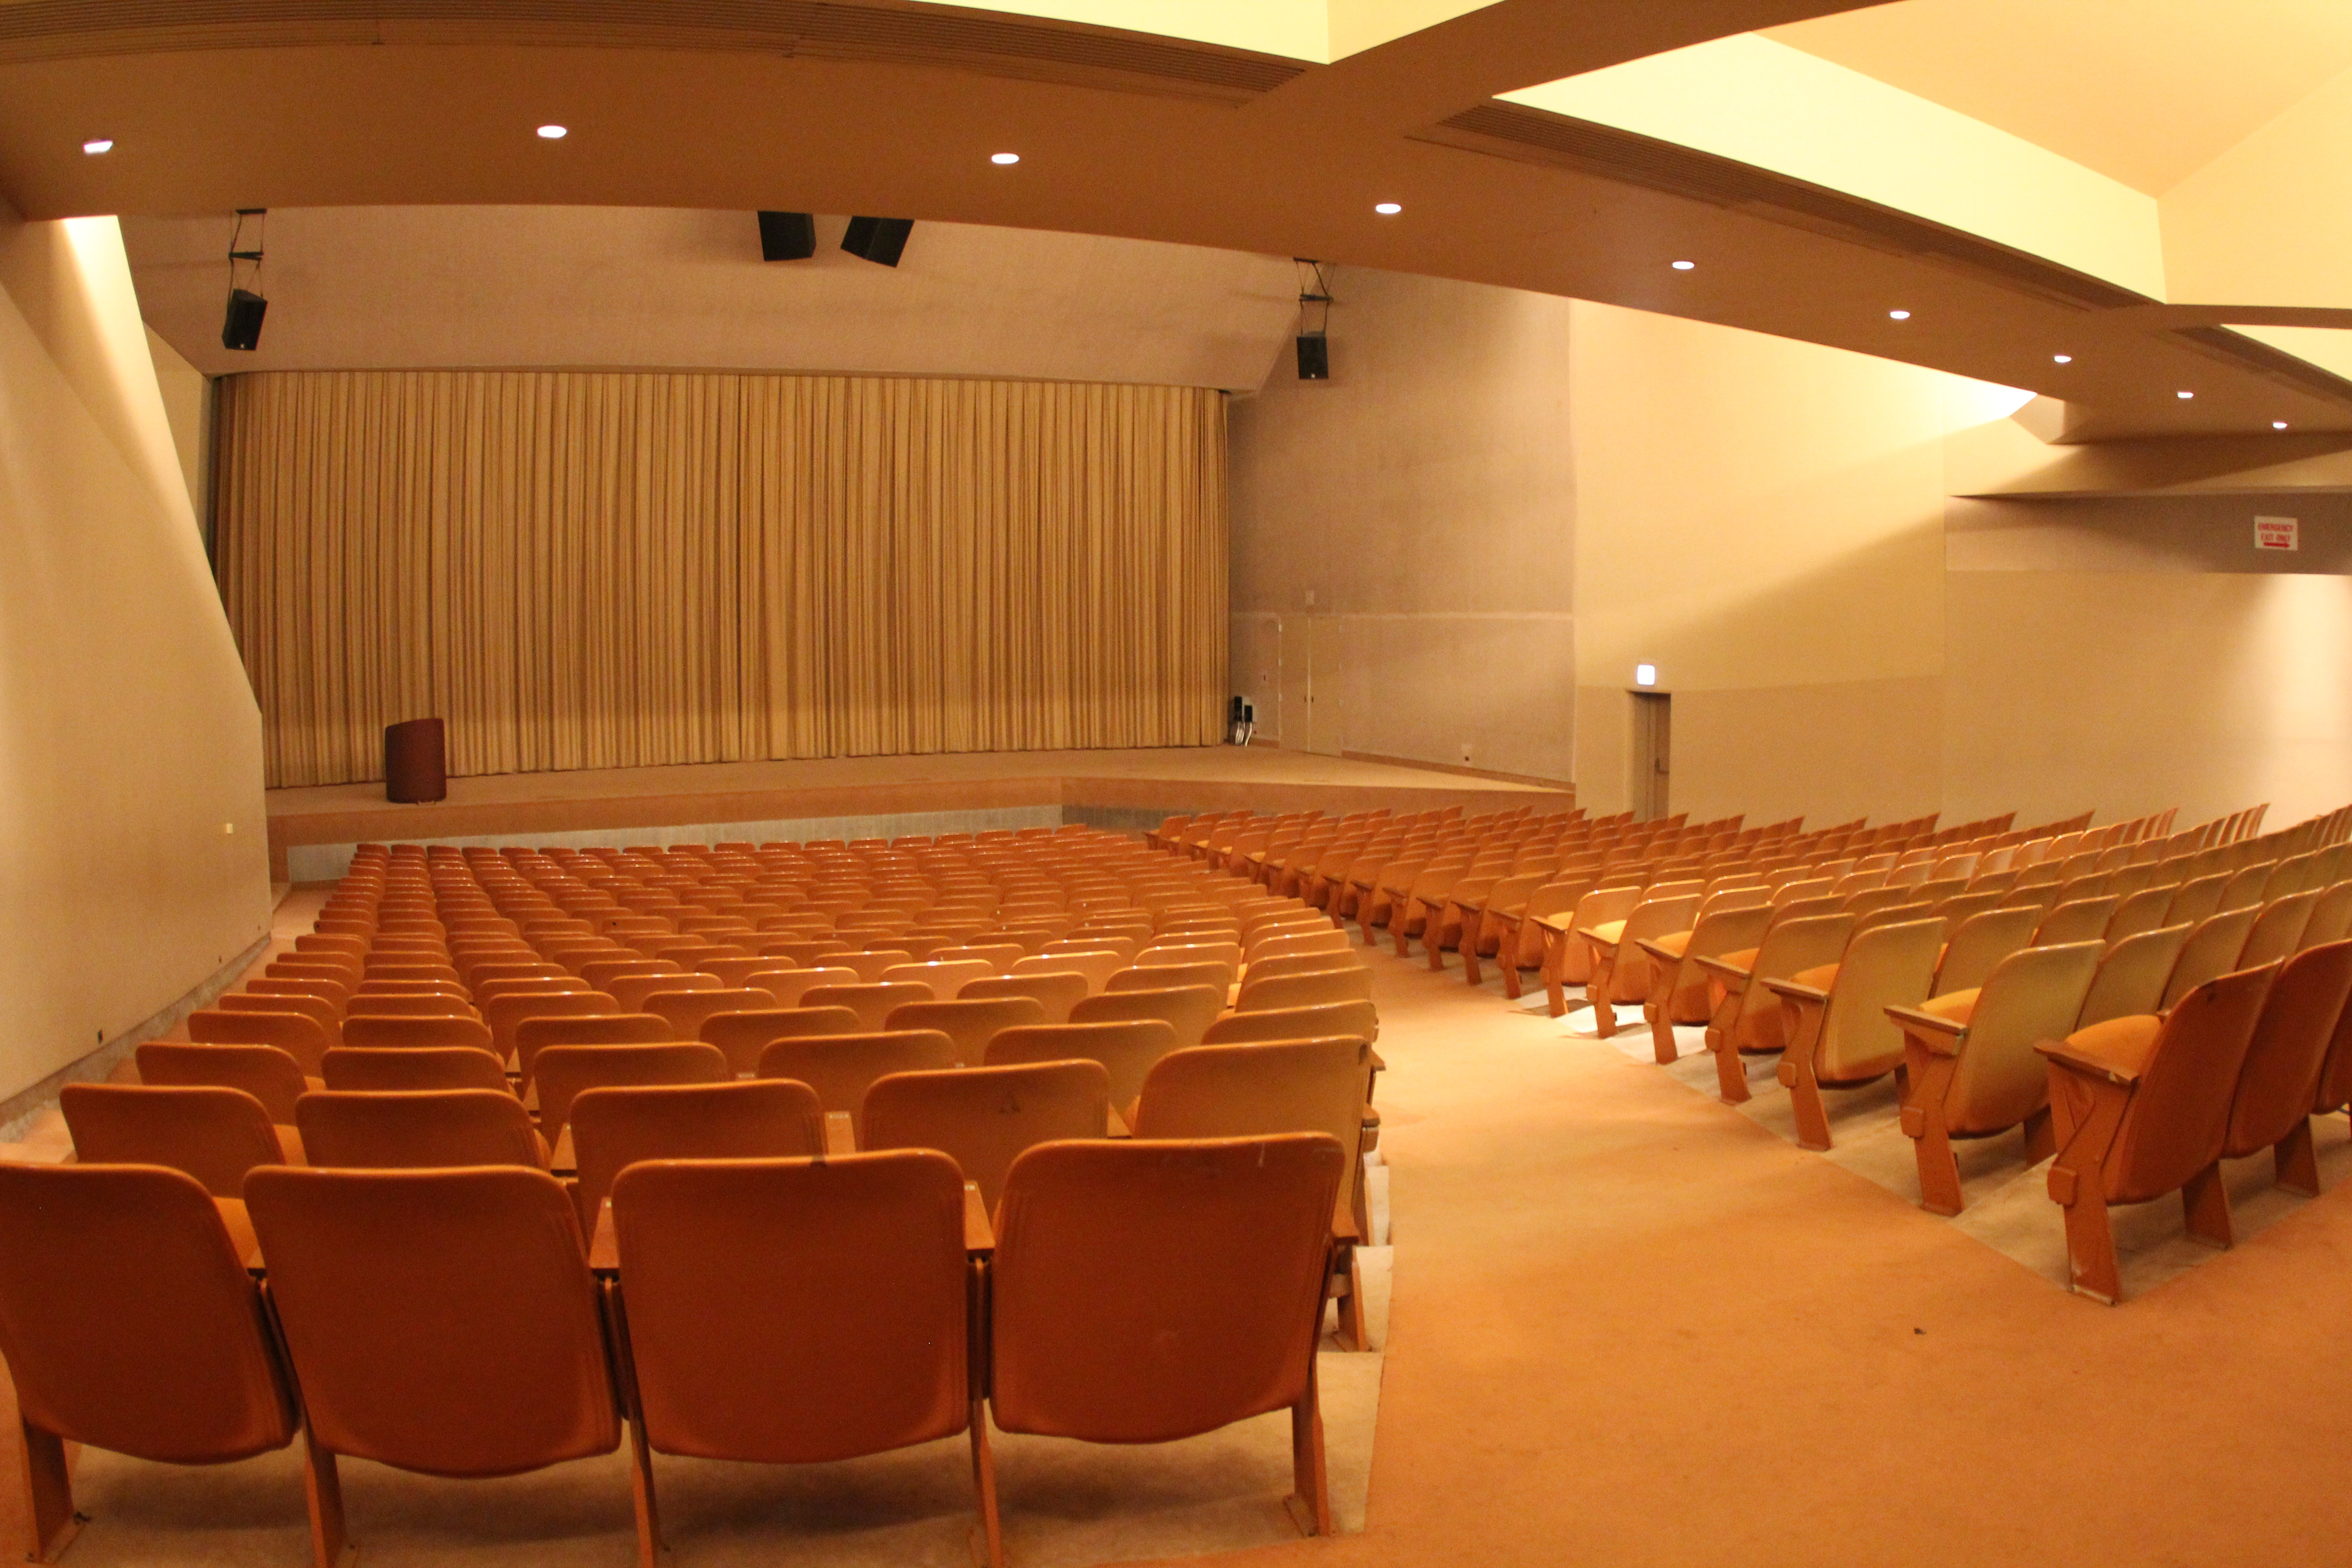 Large auditorium with orange seats